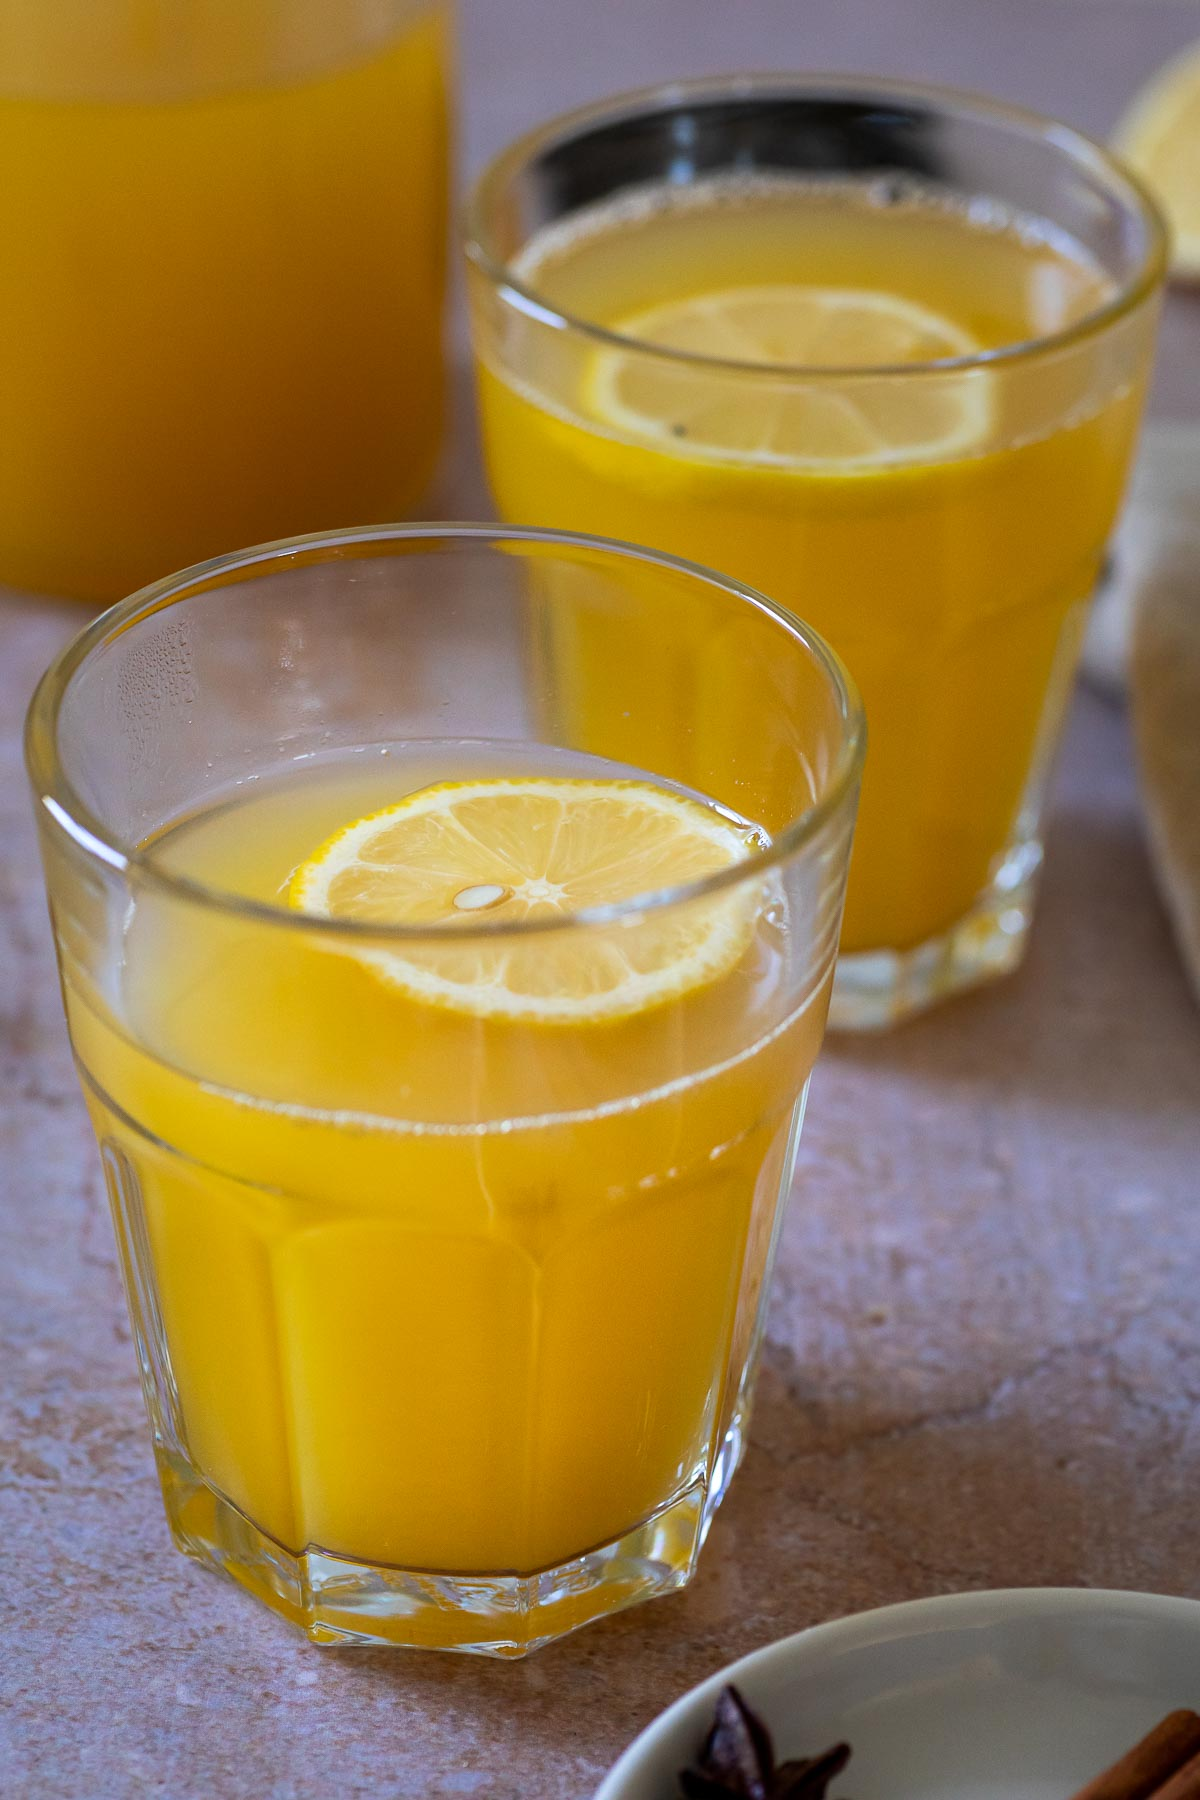 2 cups with warm winter lemonade with a lemon slice on top.